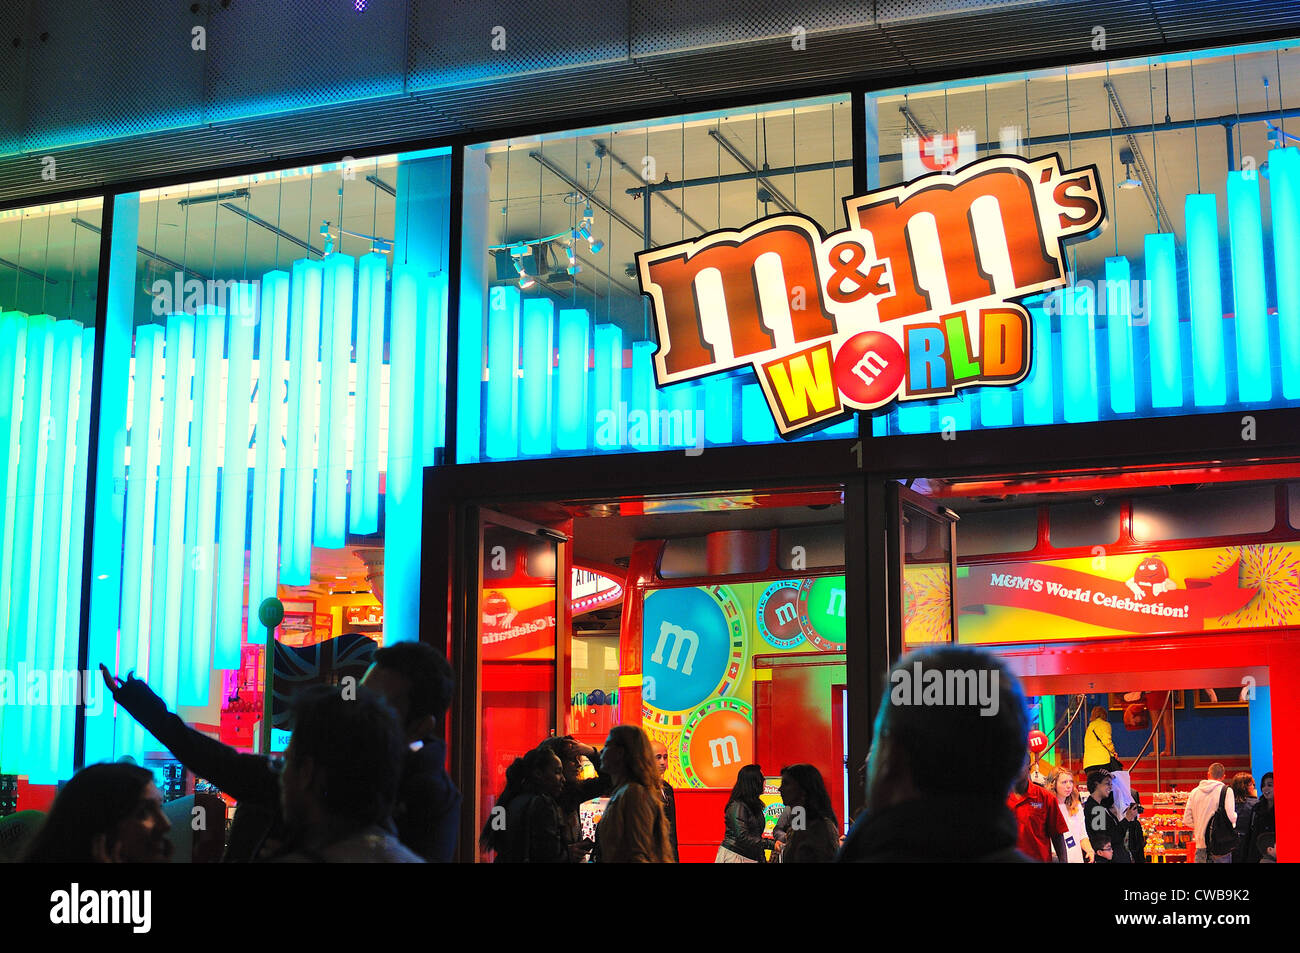 Facade of The M&M store Central London at night - Stock Image